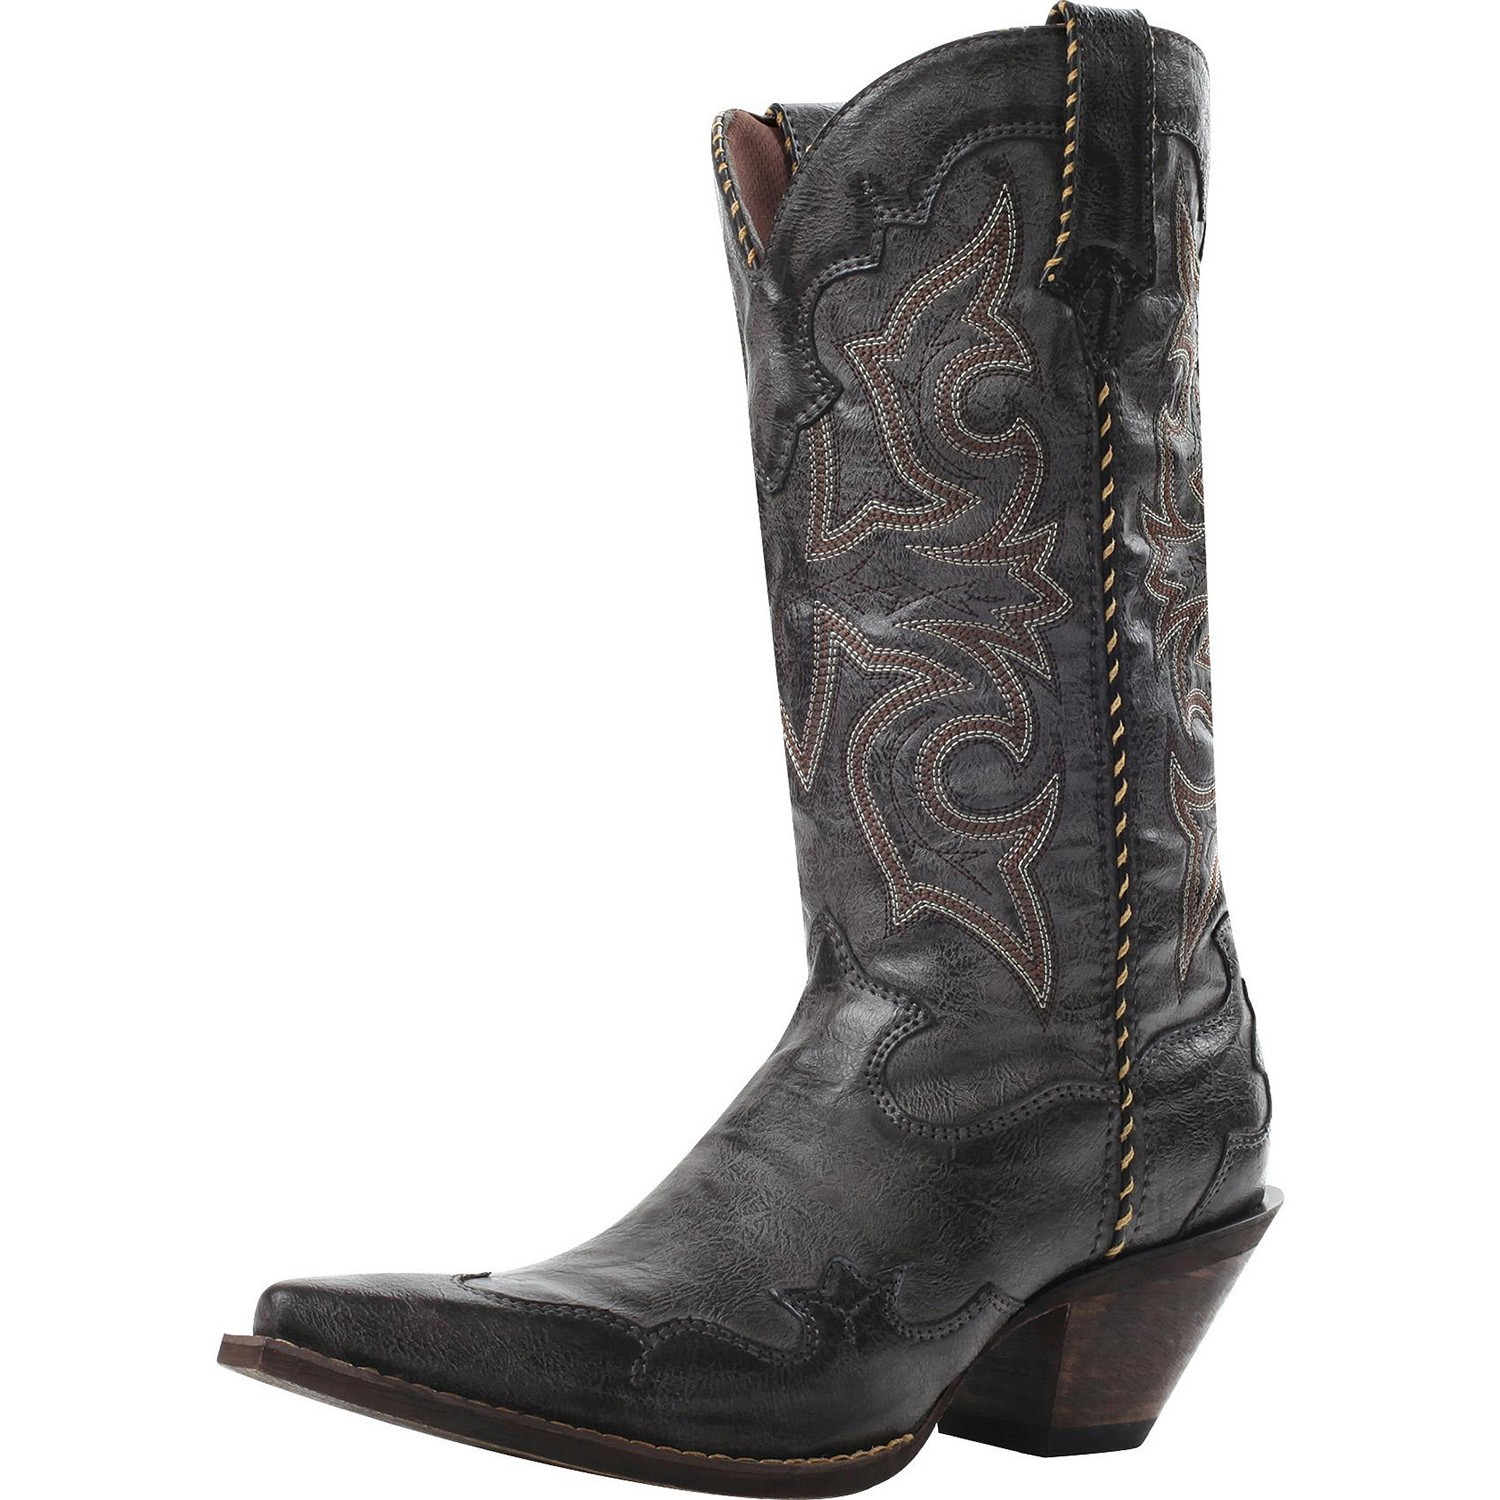 Ladies Cowboy Boots Clearance - Boot Yc